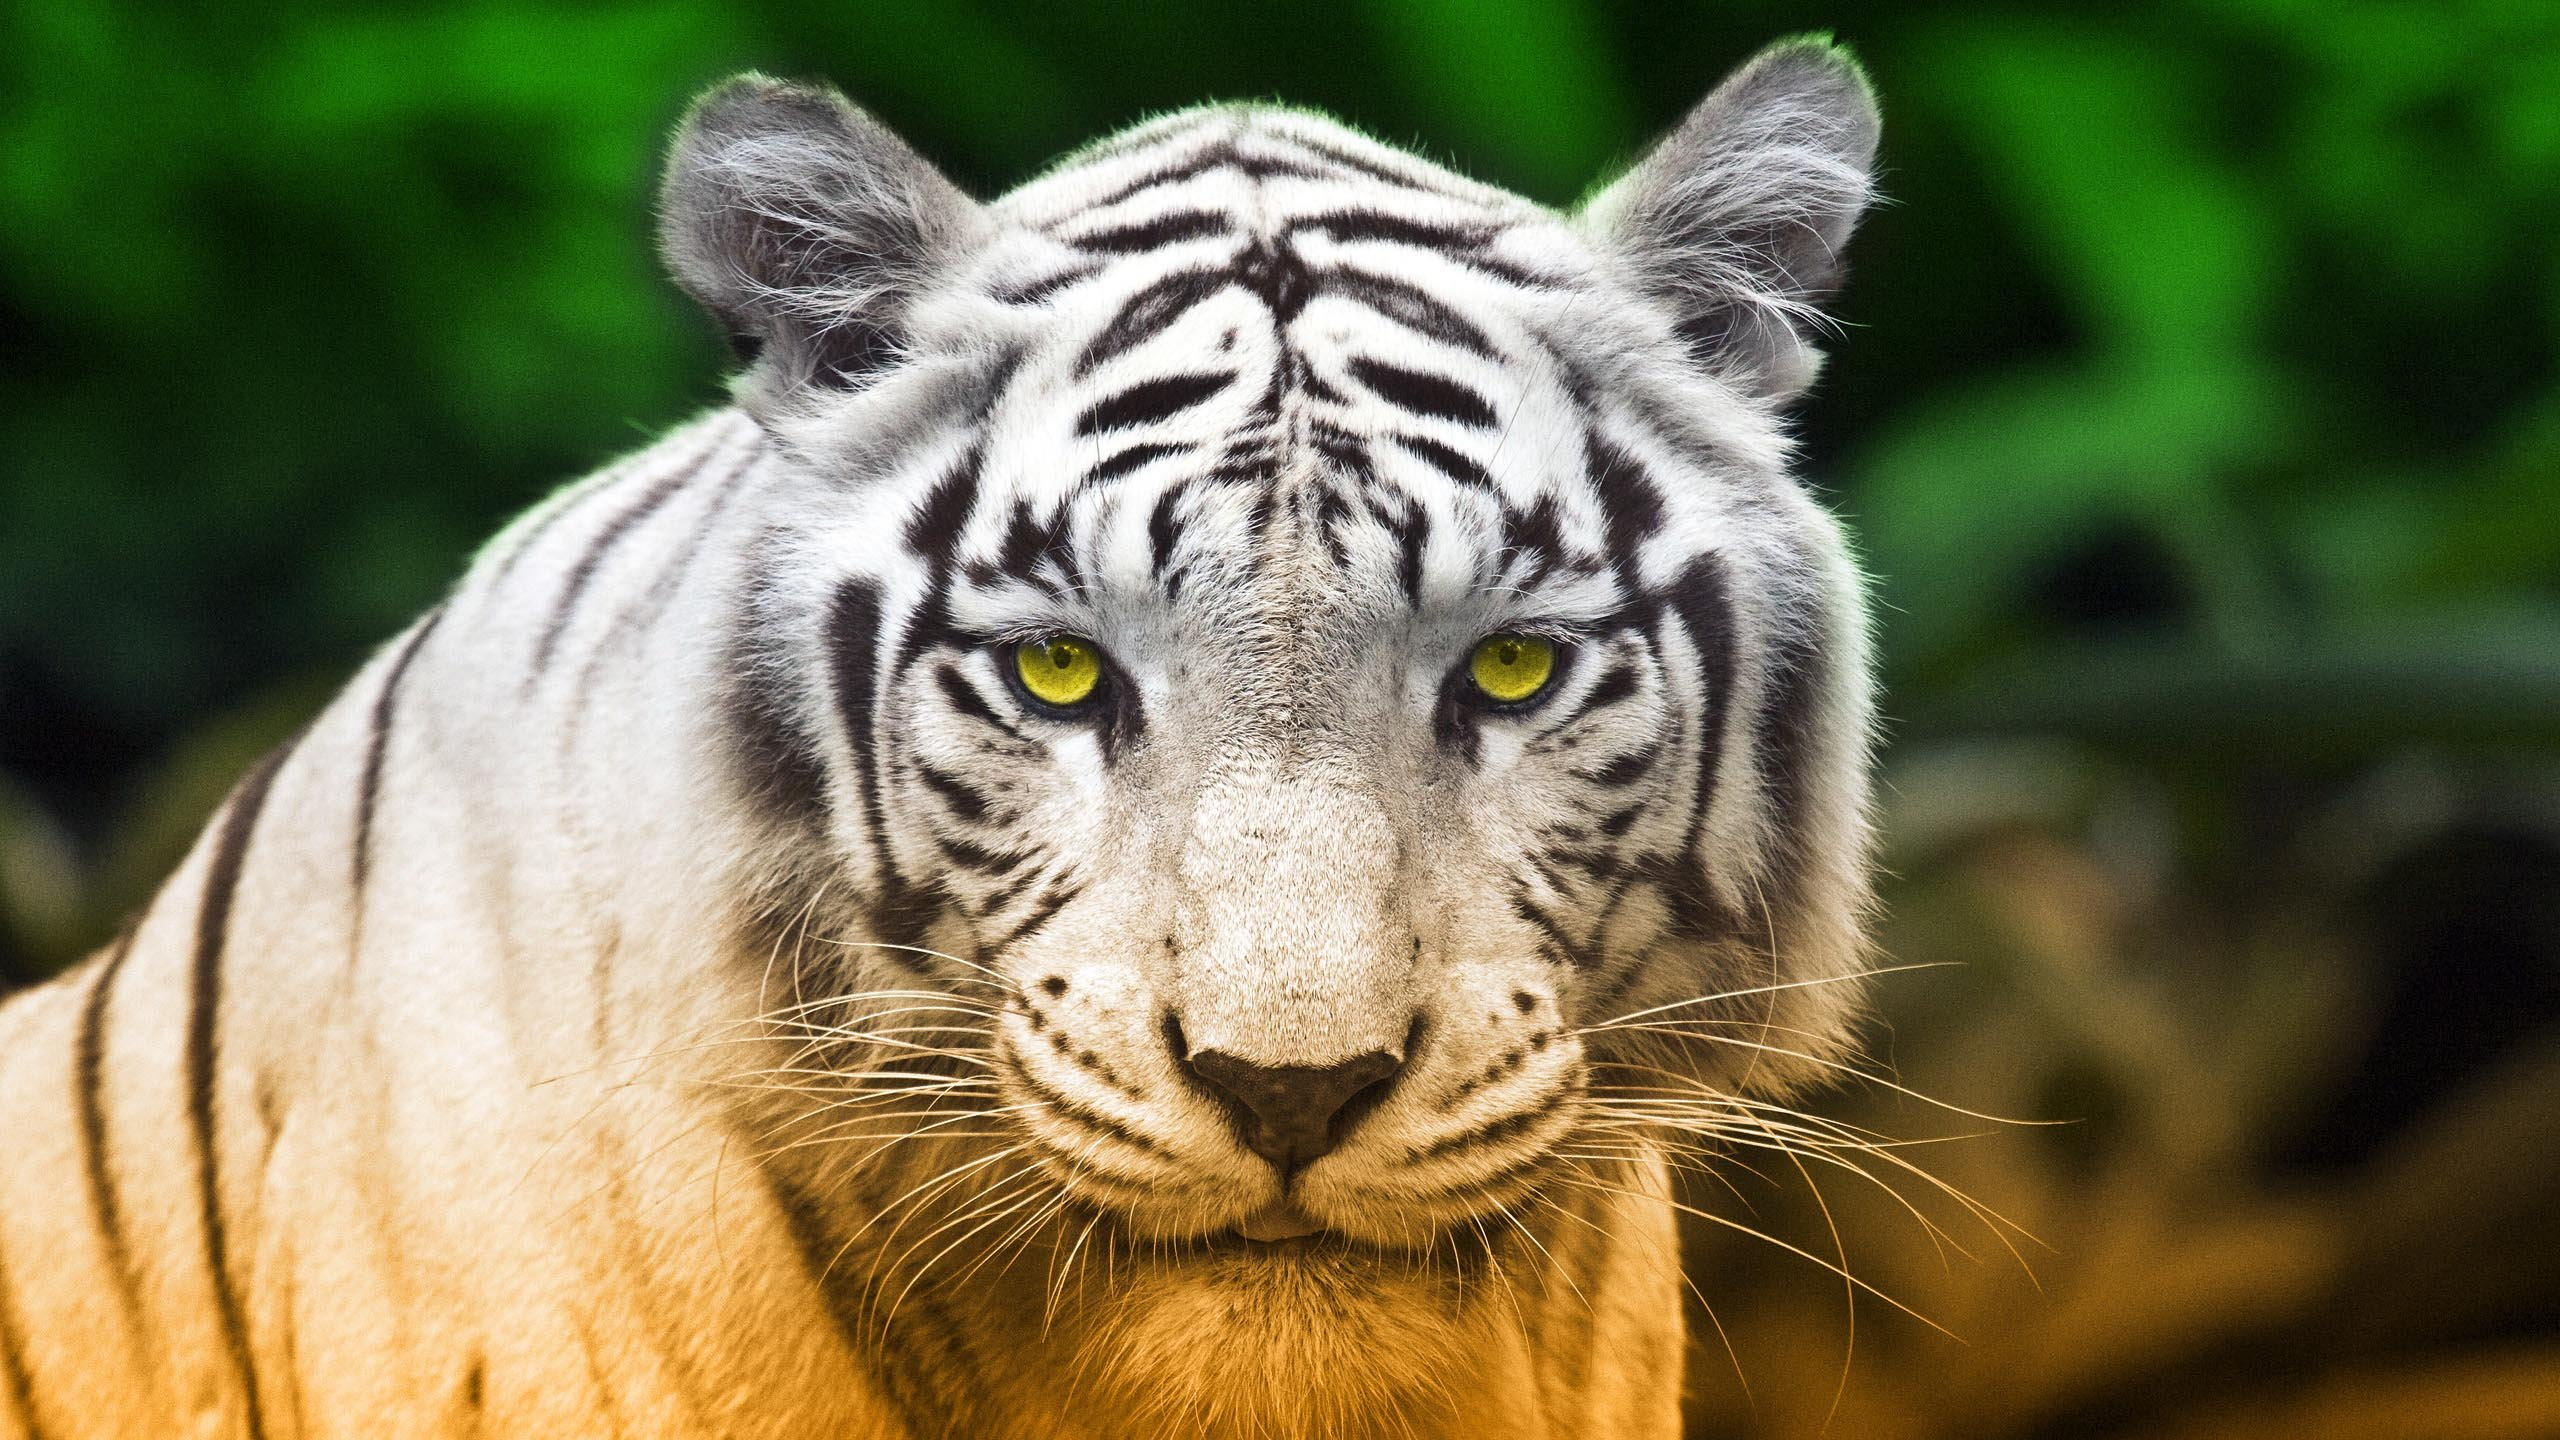 Download hd 2560x1440 White Tiger desktop wallpaper ID:174847 for free